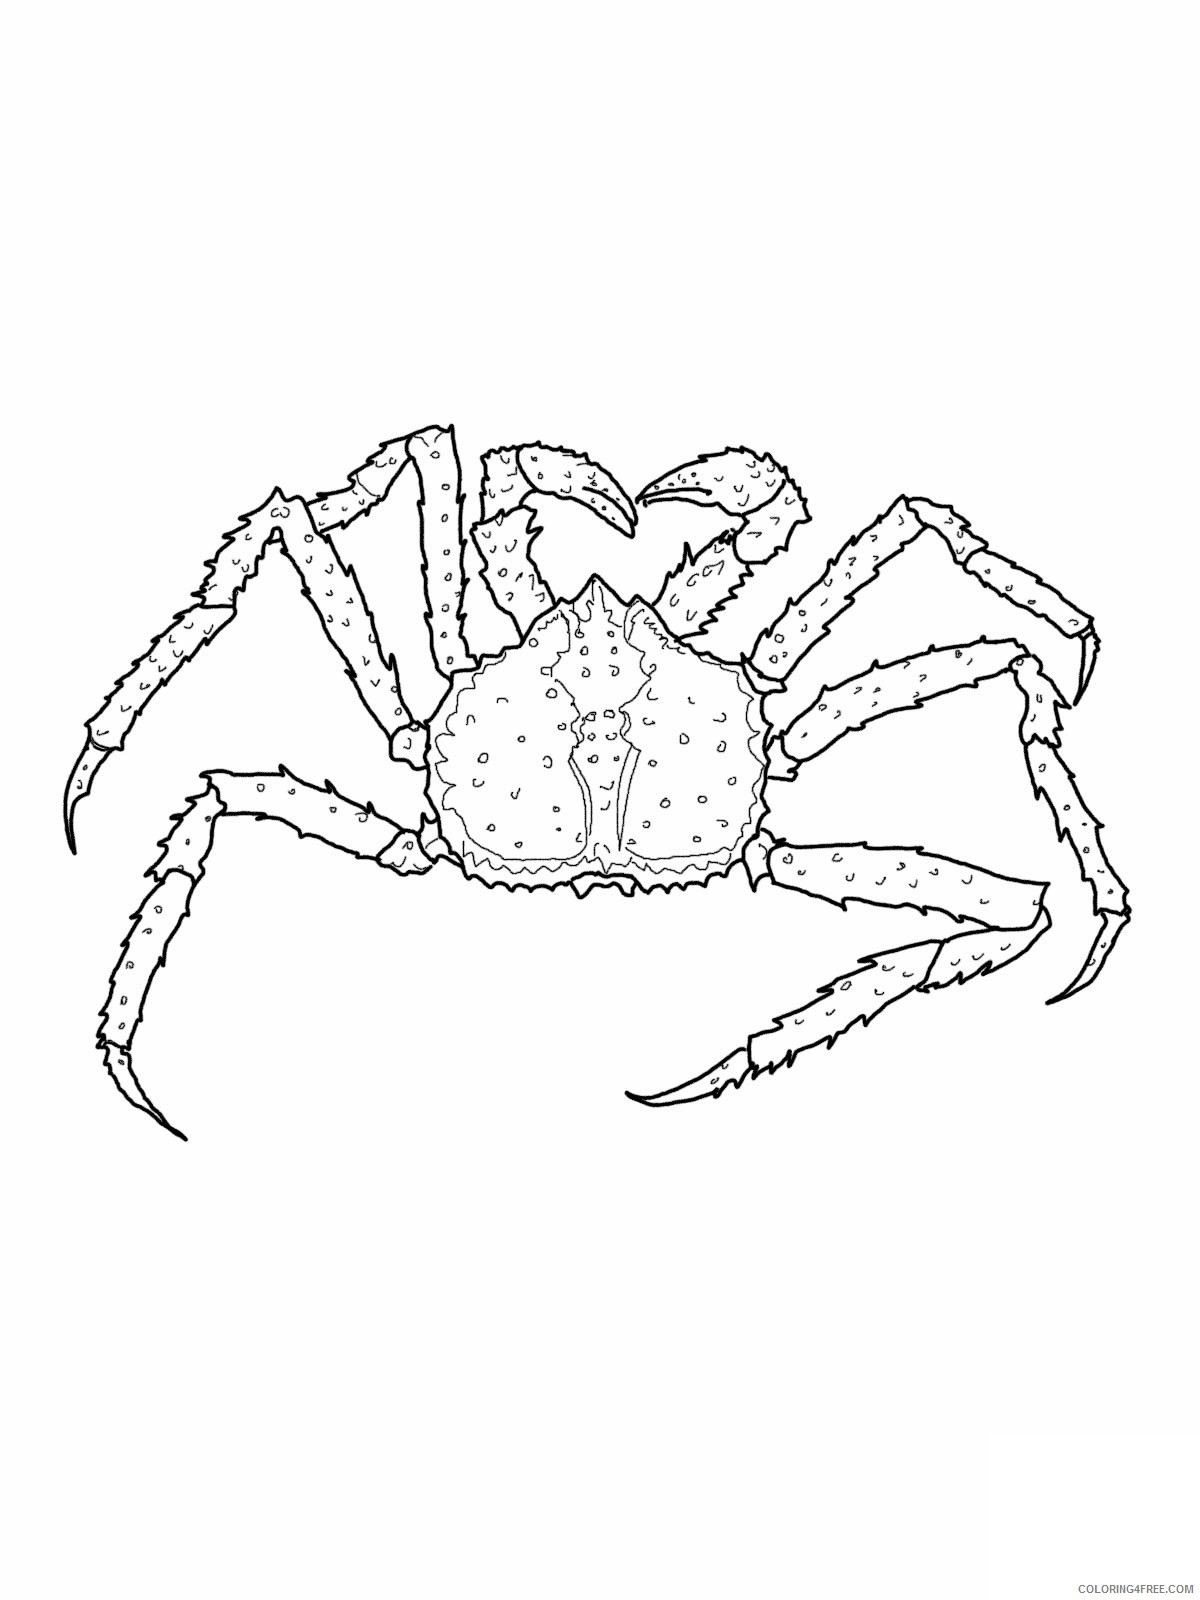 king crab coloring pages printable Coloring4free